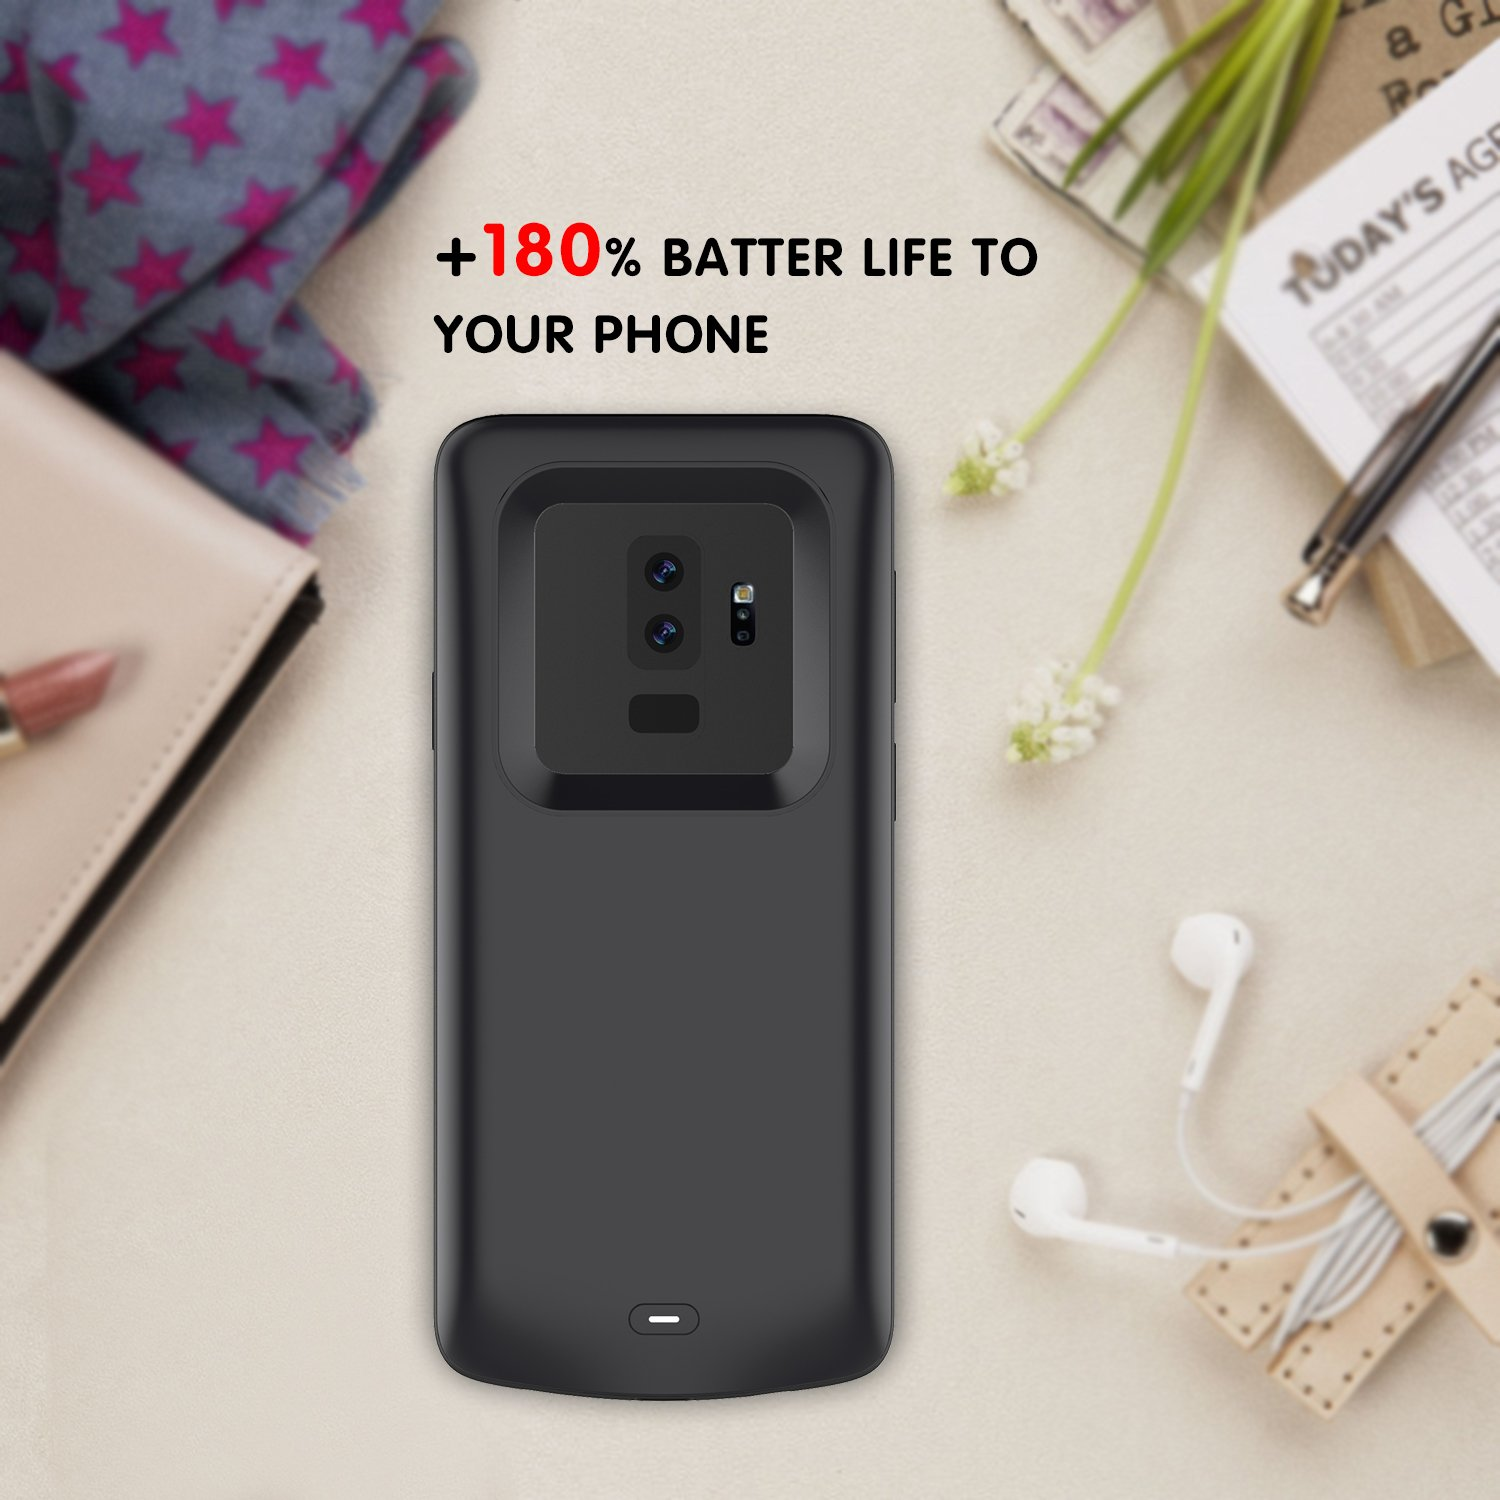 1c84aec2be7 Amazon.com: Galaxy S9 Plus Battery Case, Mpaltor 5200mAh Portable  Rechargeable Extended Backup Charging Juice External Power Bank Protective Battery  Case ...